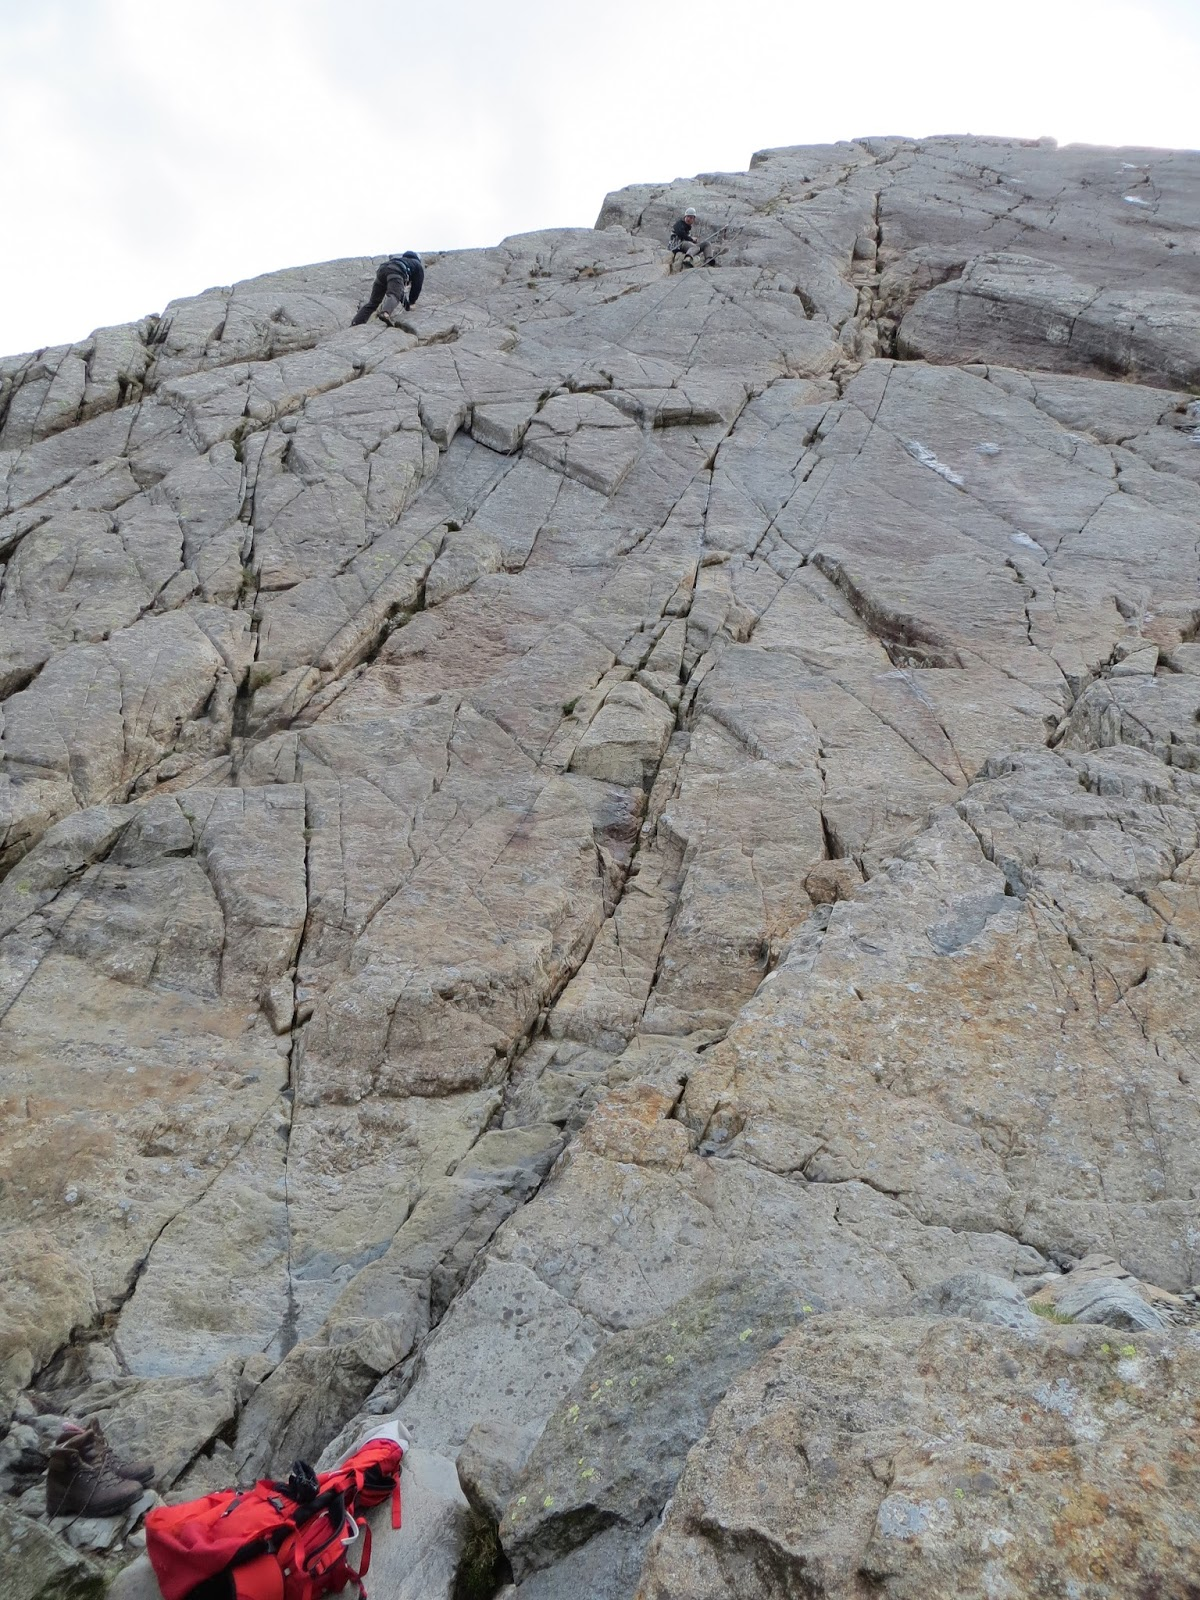 little tryfan, slab, multi pitch, Wales, climbing, adventure, trad, sport, llanberis, snowdon, snowdonia, great britain, uk, outdoors, landscape, photography, scenic, beautiful, high, scramble, climb, mountain,